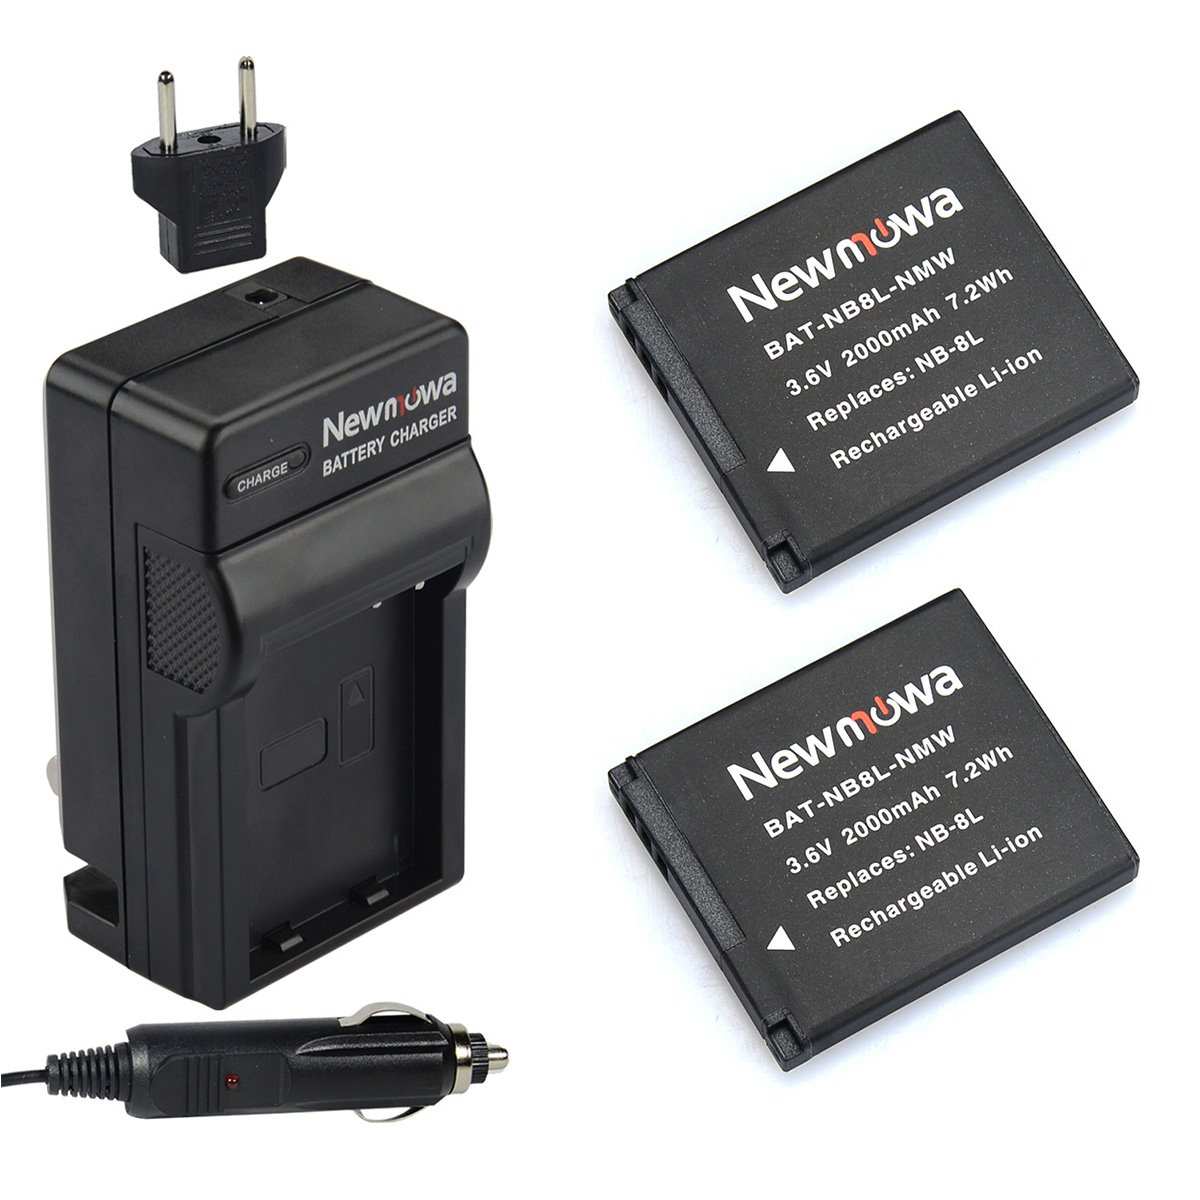 Newmowa NB-8L Replacement Battery (2-Pack) and Charger kit for Canon NB-8L,CB-2LA and Canon PowerShot A2200, A3000 is, A3100 is, A3200 is, A3300 is by Newmowa